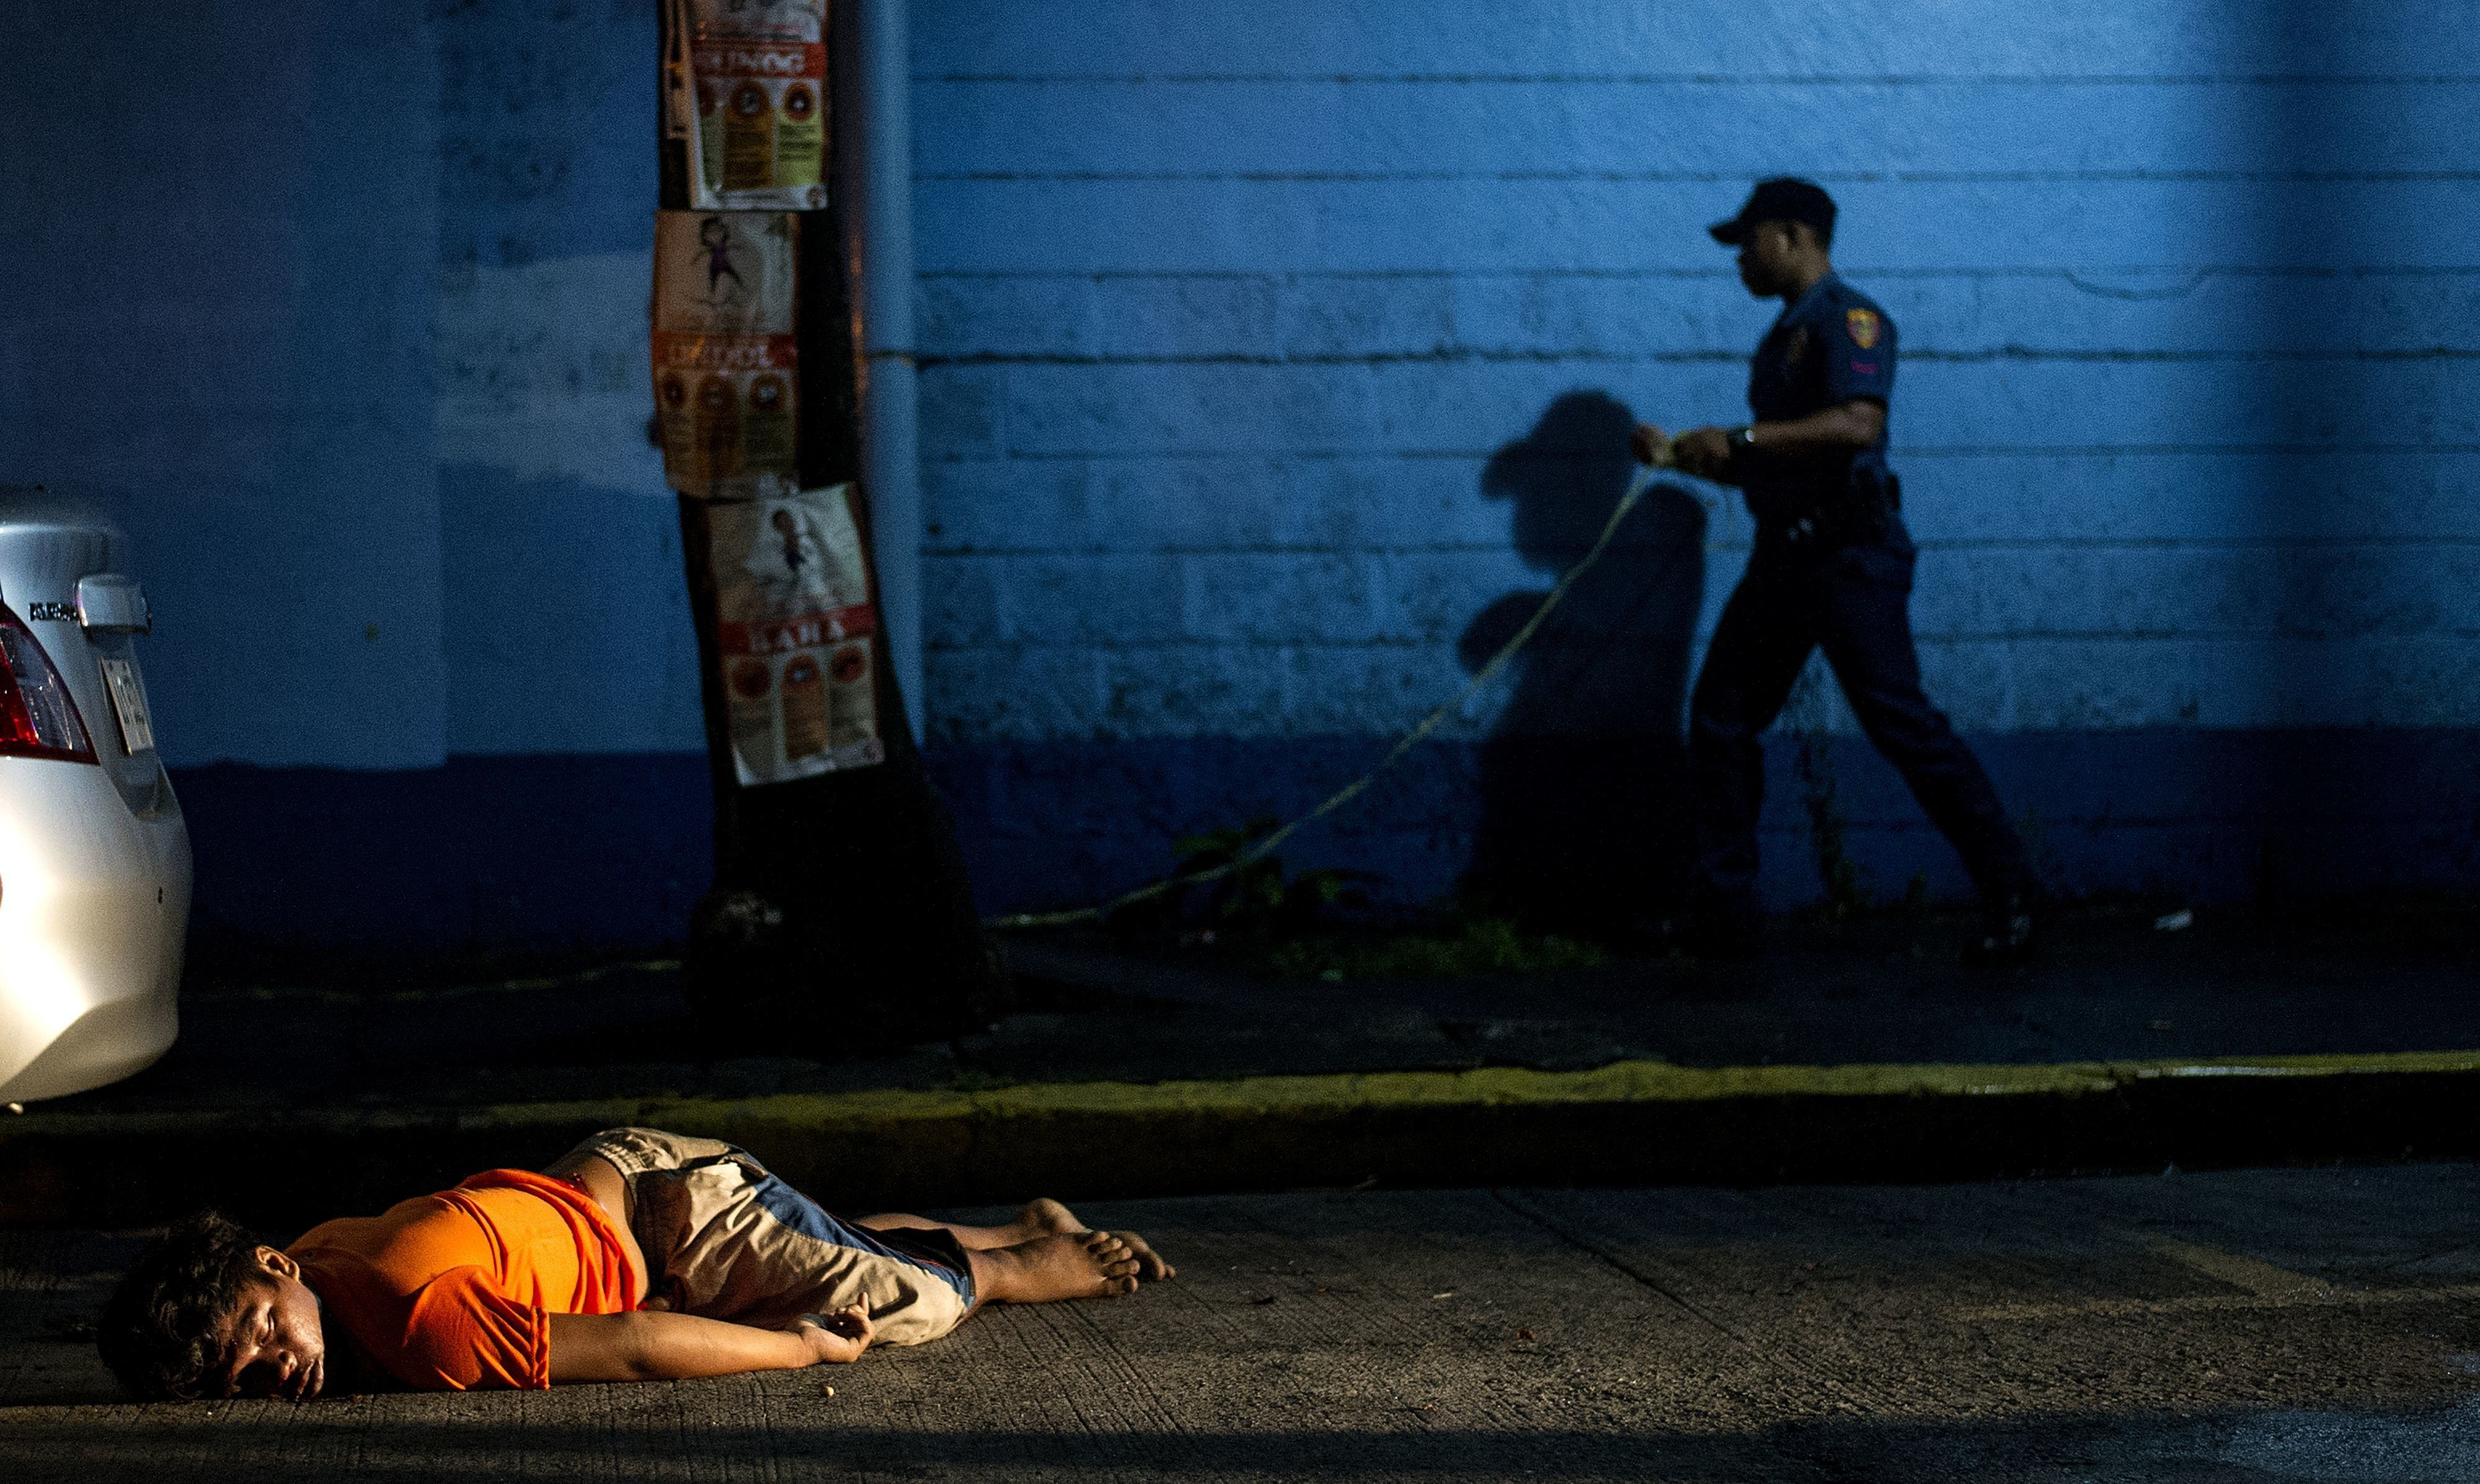 In this photograph taken on July 23, 2016, the body of a man, shot dead by unidentified gunmen, lies on the ground in Manila.  The Philippine government on August 19, 2016, criticised as 'baseless and reckless' a UN statement that President Rodrigo Duterte's bloody war on drugs amounted to a crime under international law. / AFP / NOEL CELIS        (Photo credit should read NOEL CELIS/AFP/Getty Images)